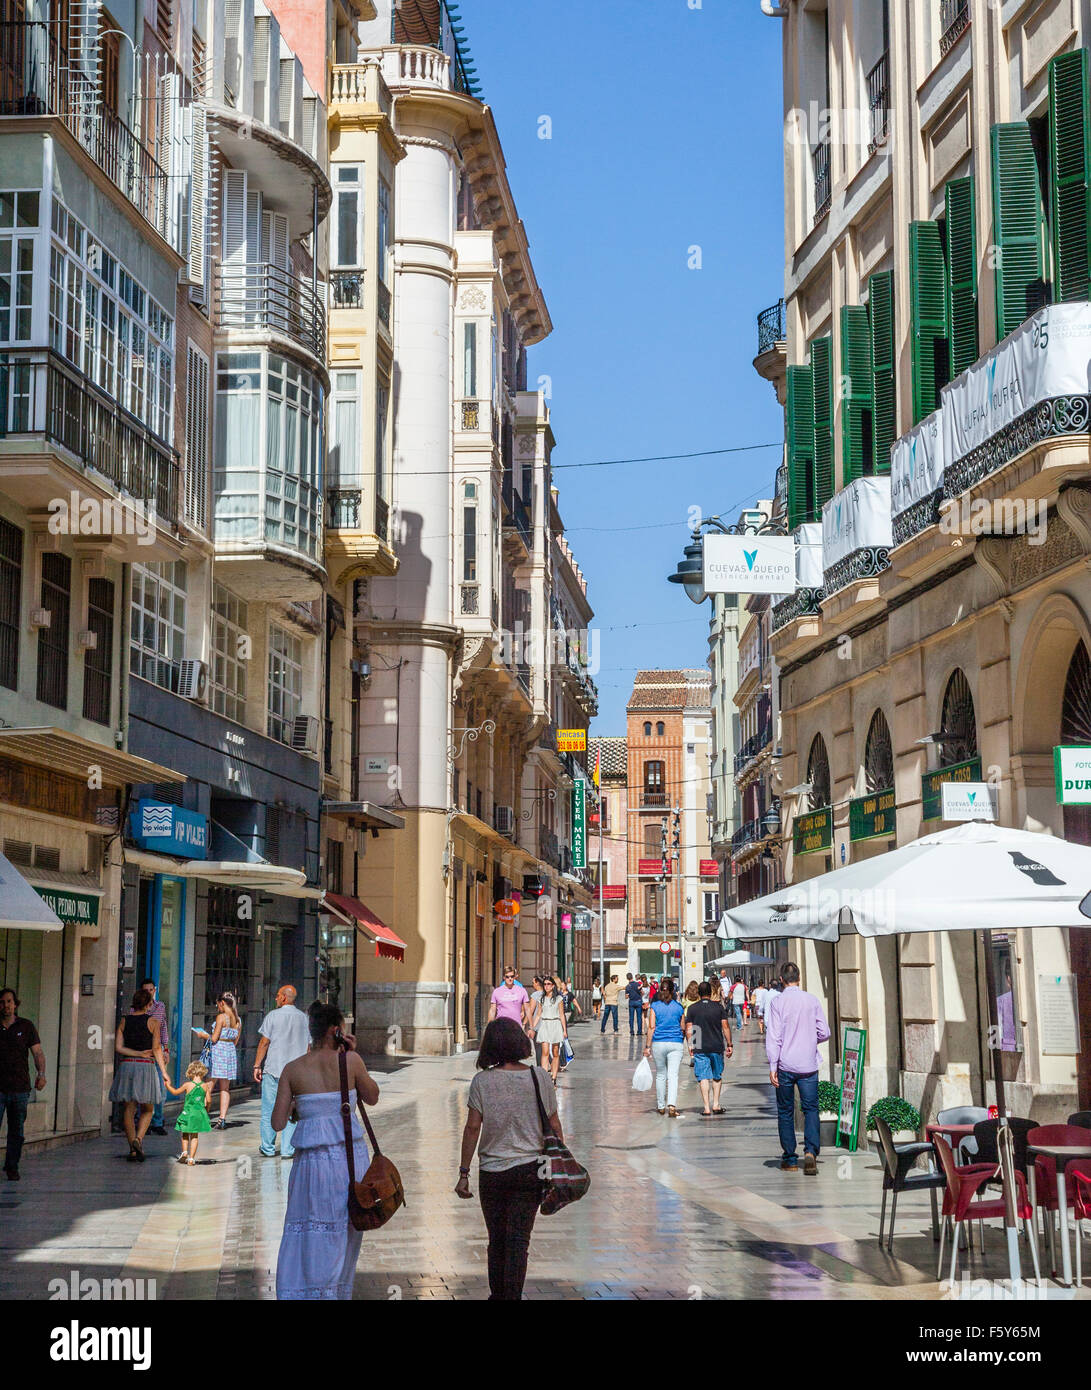 pedestrian mall at Calle Especeria in the historic center of Malaga, Andalusia, Spain - Stock Image